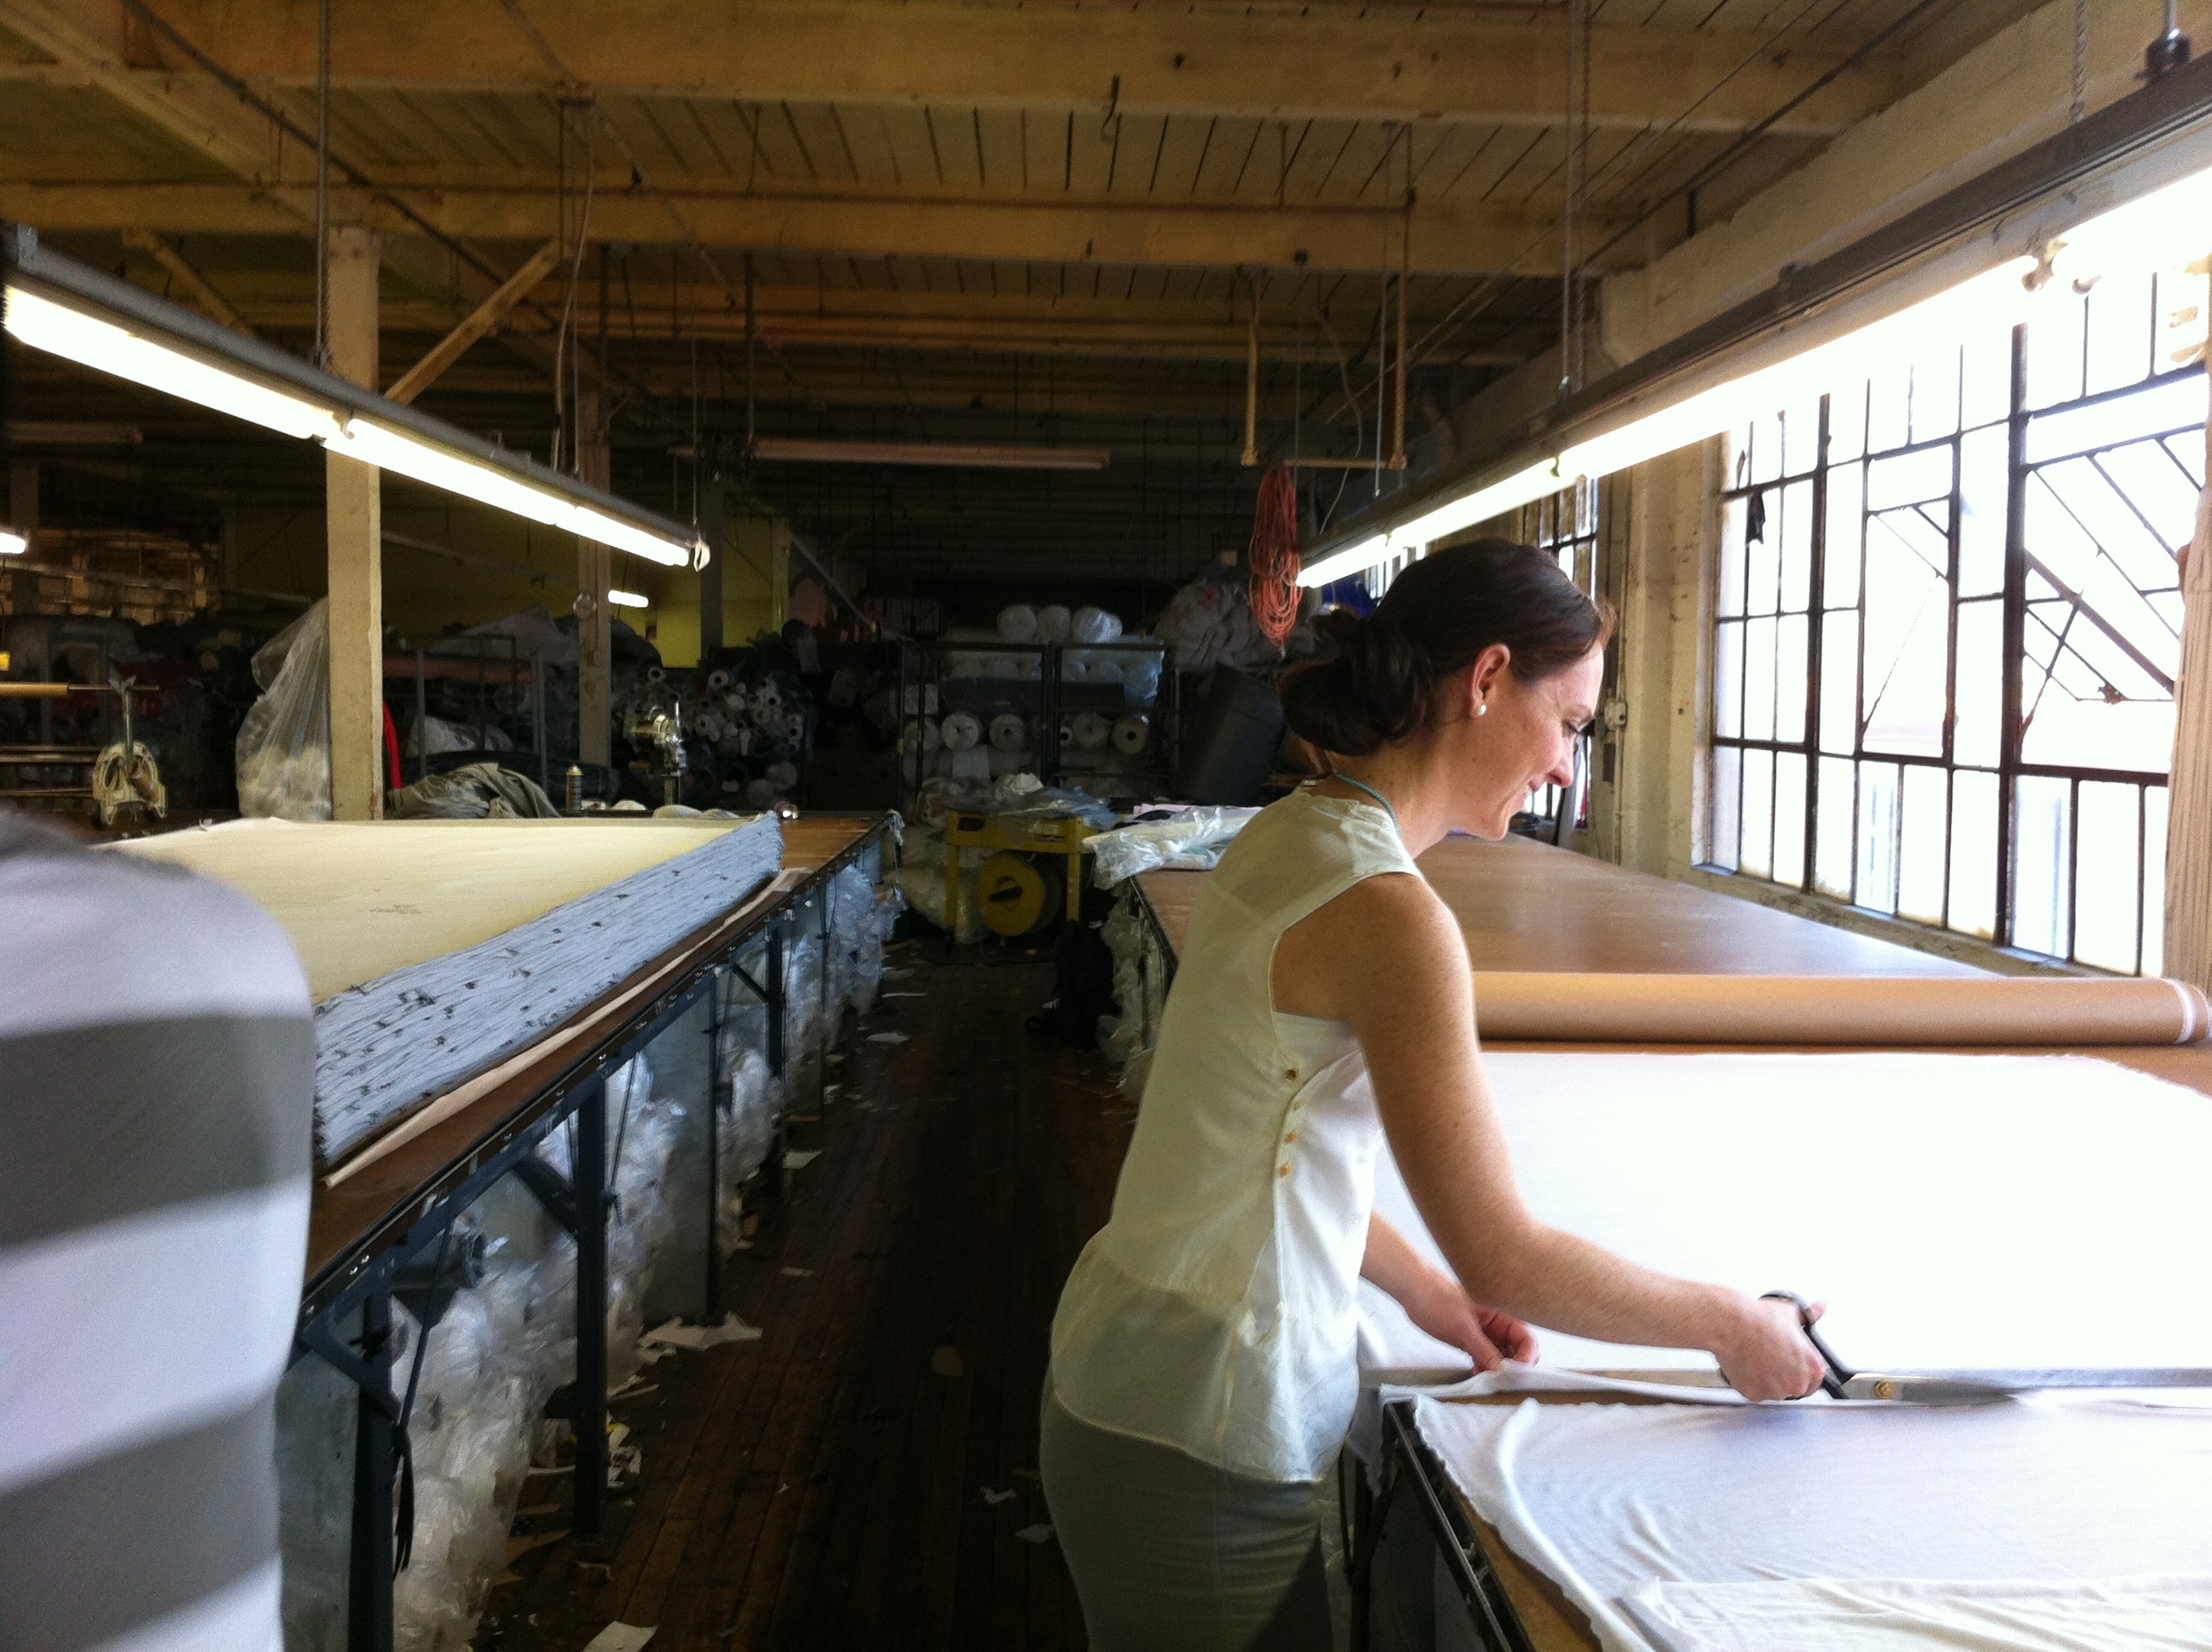 rachel doing her part by cutting fabric from the roll in preparation for pattern application